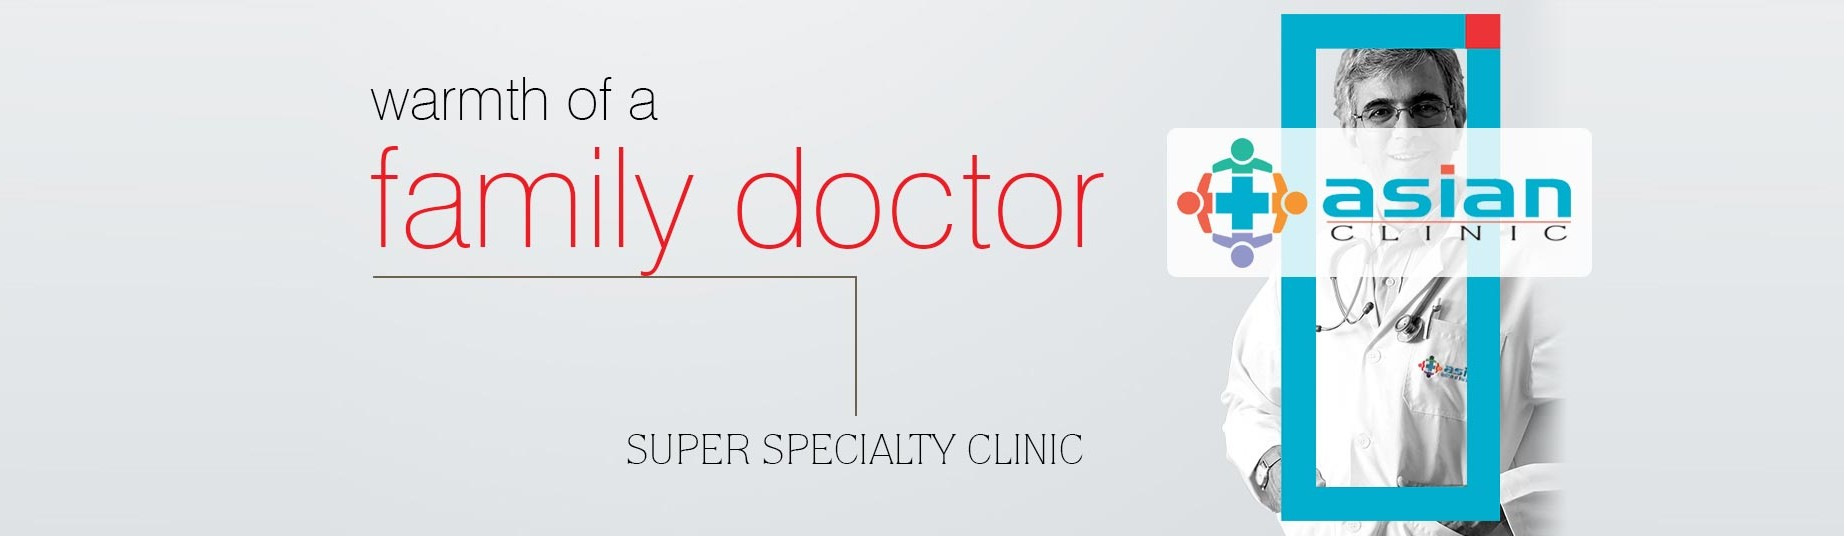 Asian-Clinic-HealthCare